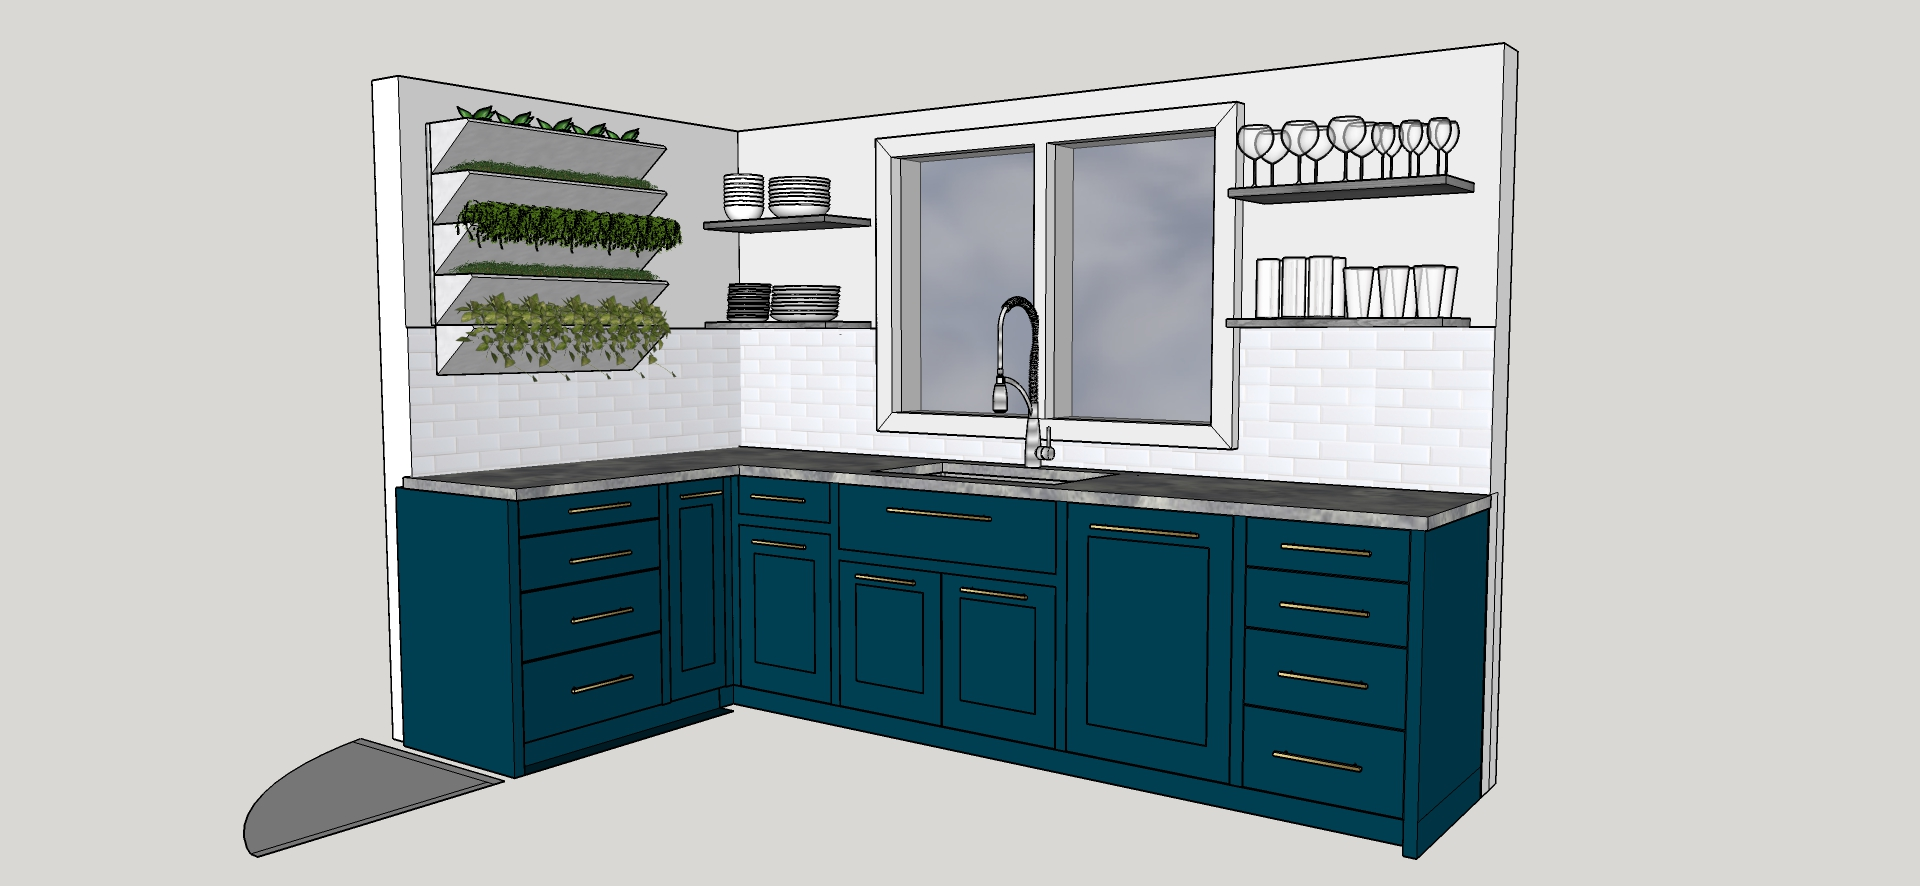 Tanglewood_Kitchen_COLOR_Plants.jpg